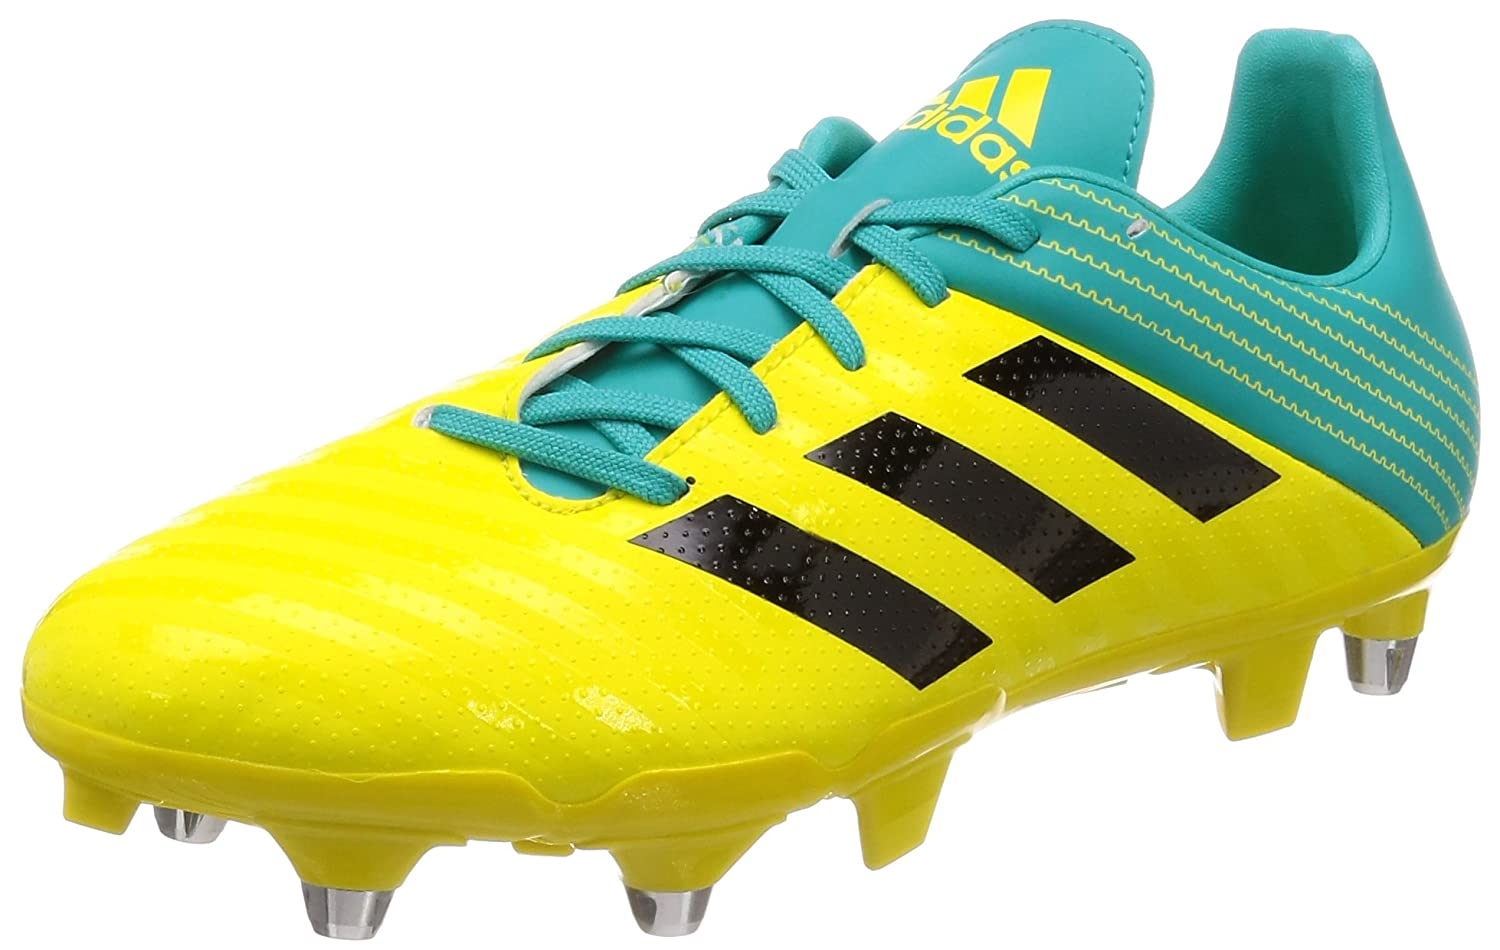 adidas Malice Adult's Rugby Boots SG